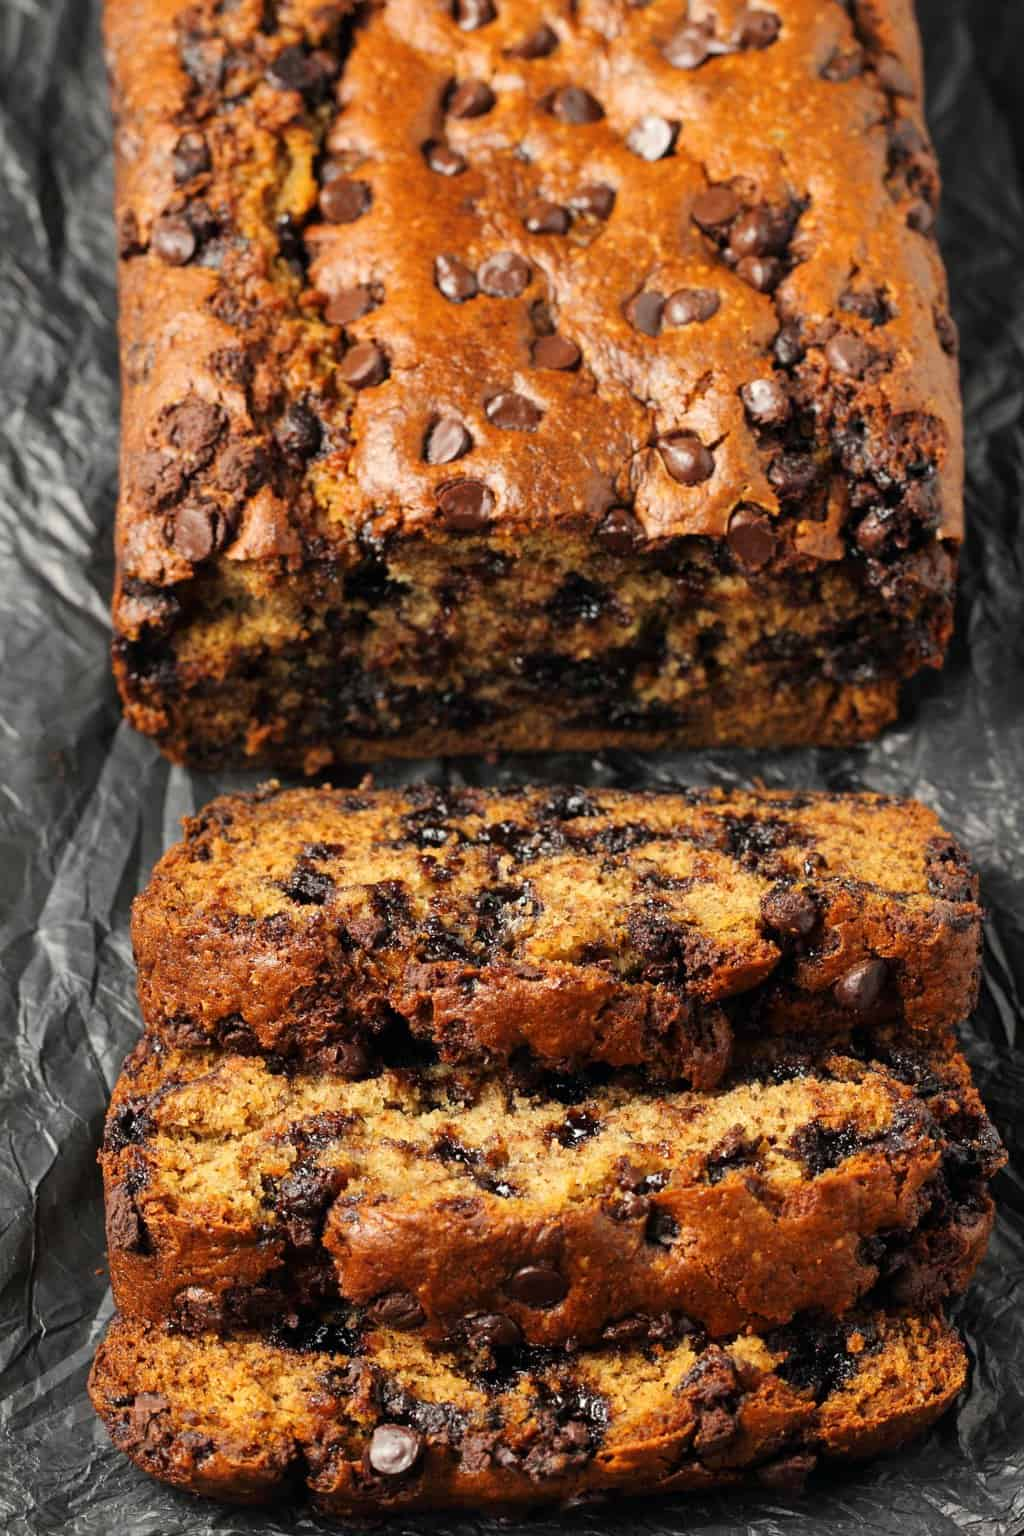 Chocolate Chip Banana Bread - Vegan chocolate chip banana bread that is perfectly moist, rich, deliciously sweet and packed with banana flavor! Ideal for dessert or breakfast!